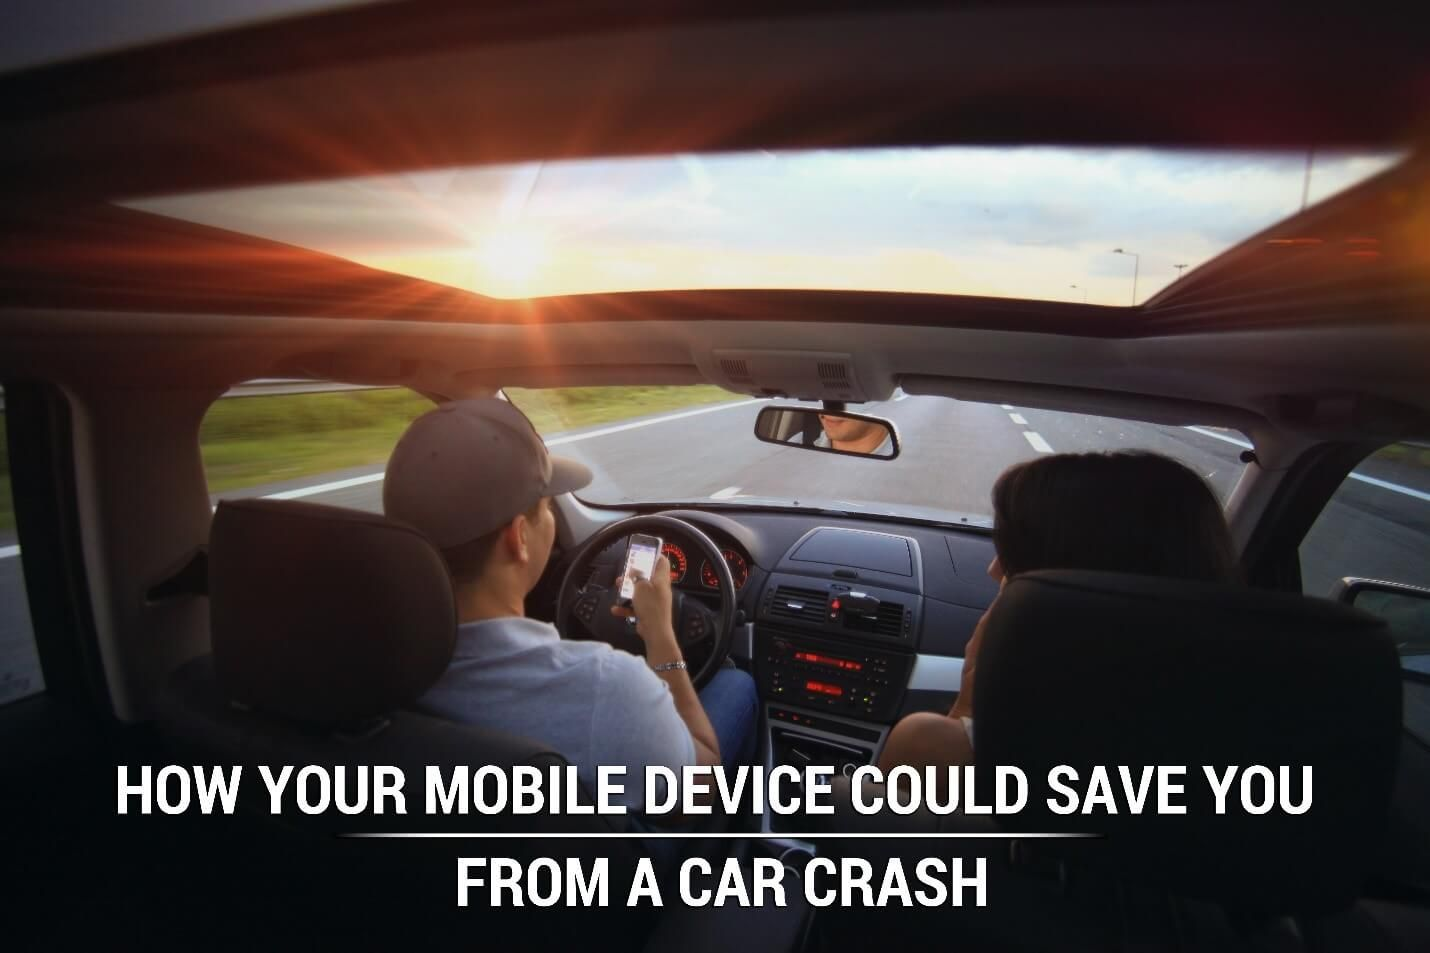 How Your Mobile Device Could Save You from a Car Crash